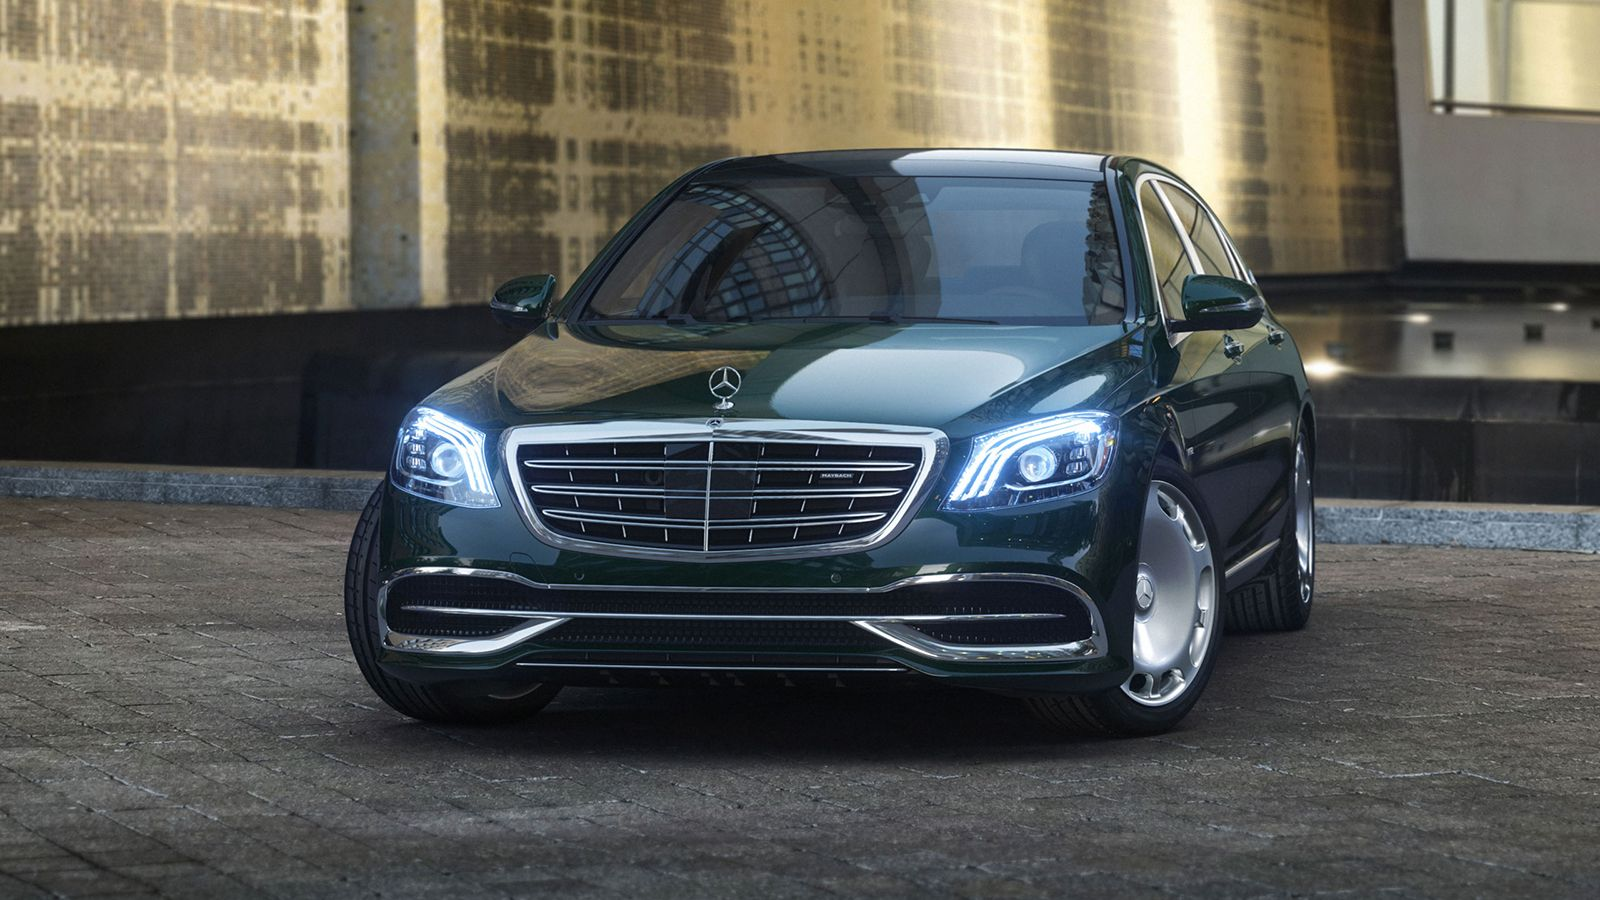 The V12 Lives On In The Next Mercedes S Class But Not The Gls Suv